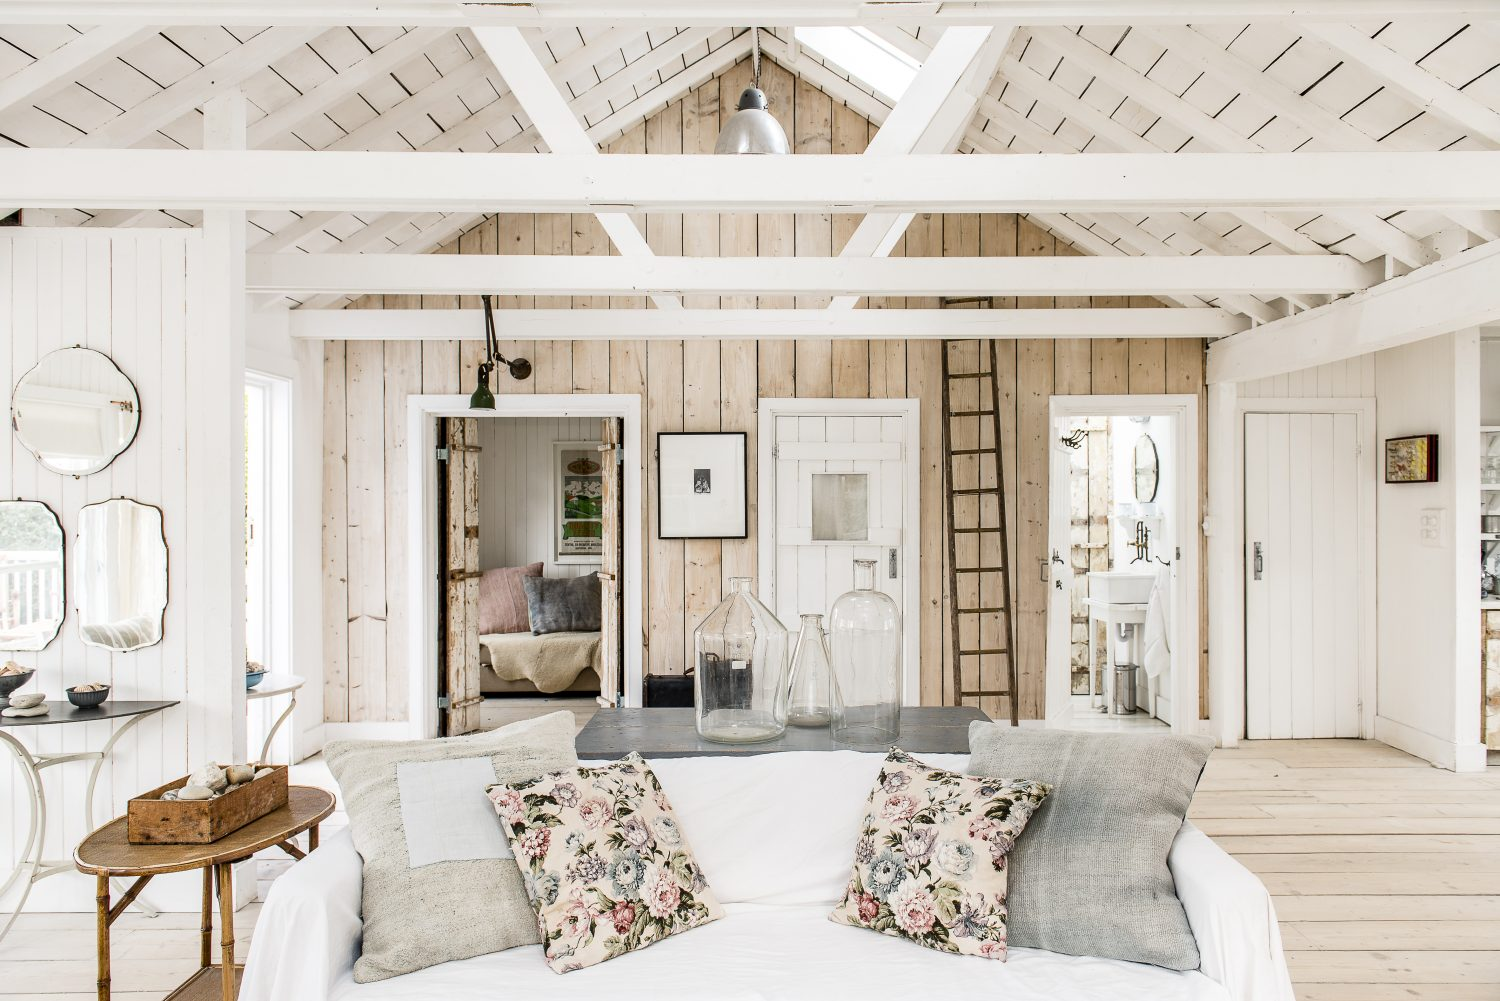 Atlanta and Dave removed the original ceilings to expose a double height, pitched ceiling and open up the cabin, to create one central living space. The floors throughout are old scaffolding planks sanded and treated with a special Danish finish and several applications of white soap